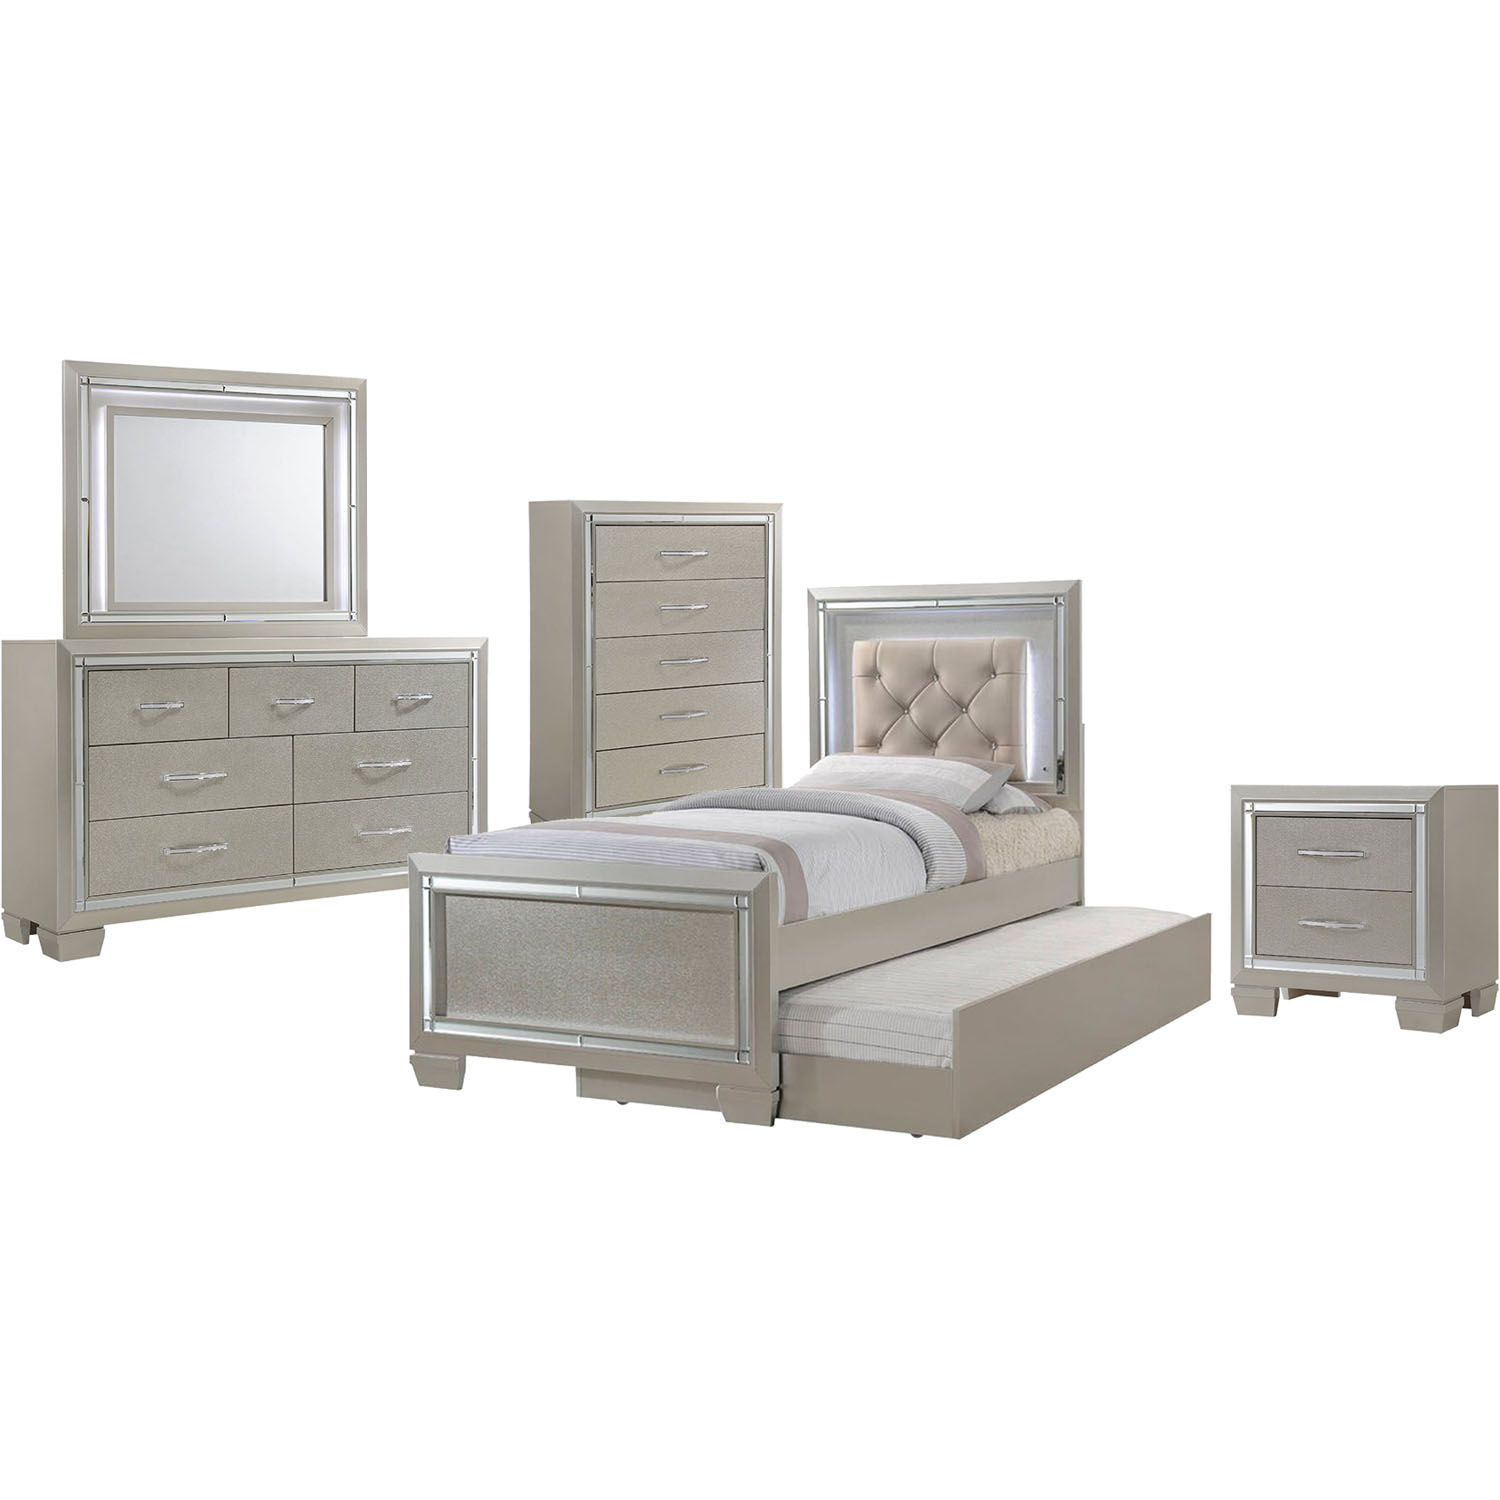 Elegance 5pc twin size bedroom suite with slide out trundle 98117a5tt1 cm - Suite cm ...